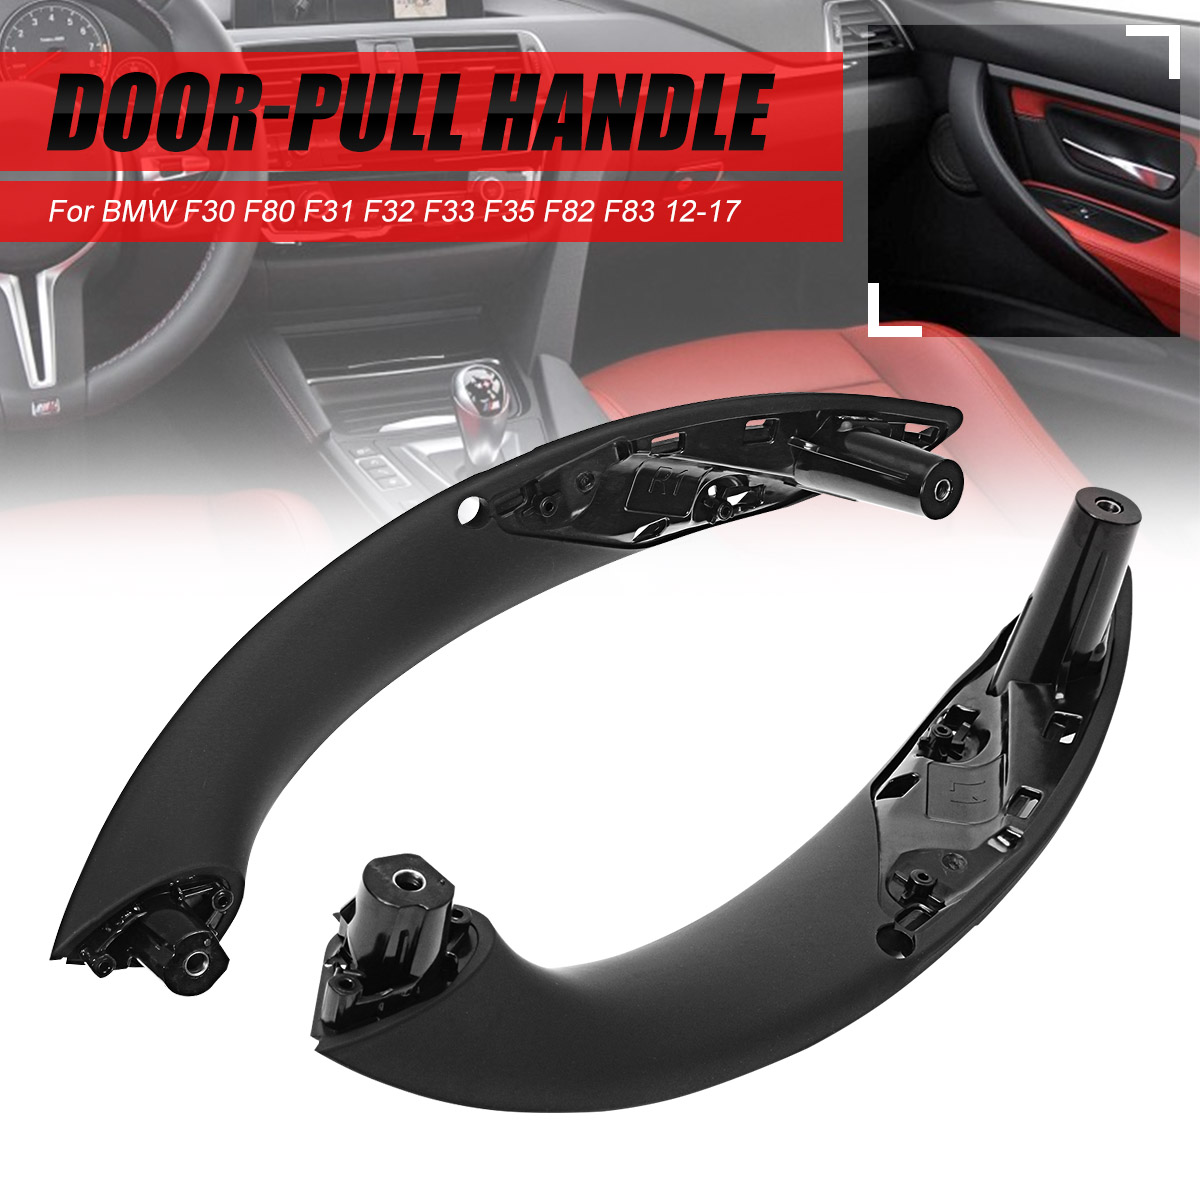 Inner Door-Pull Handle Front Left Part For BMW F30 F80 F31 F32 F33 F35 2012-2017